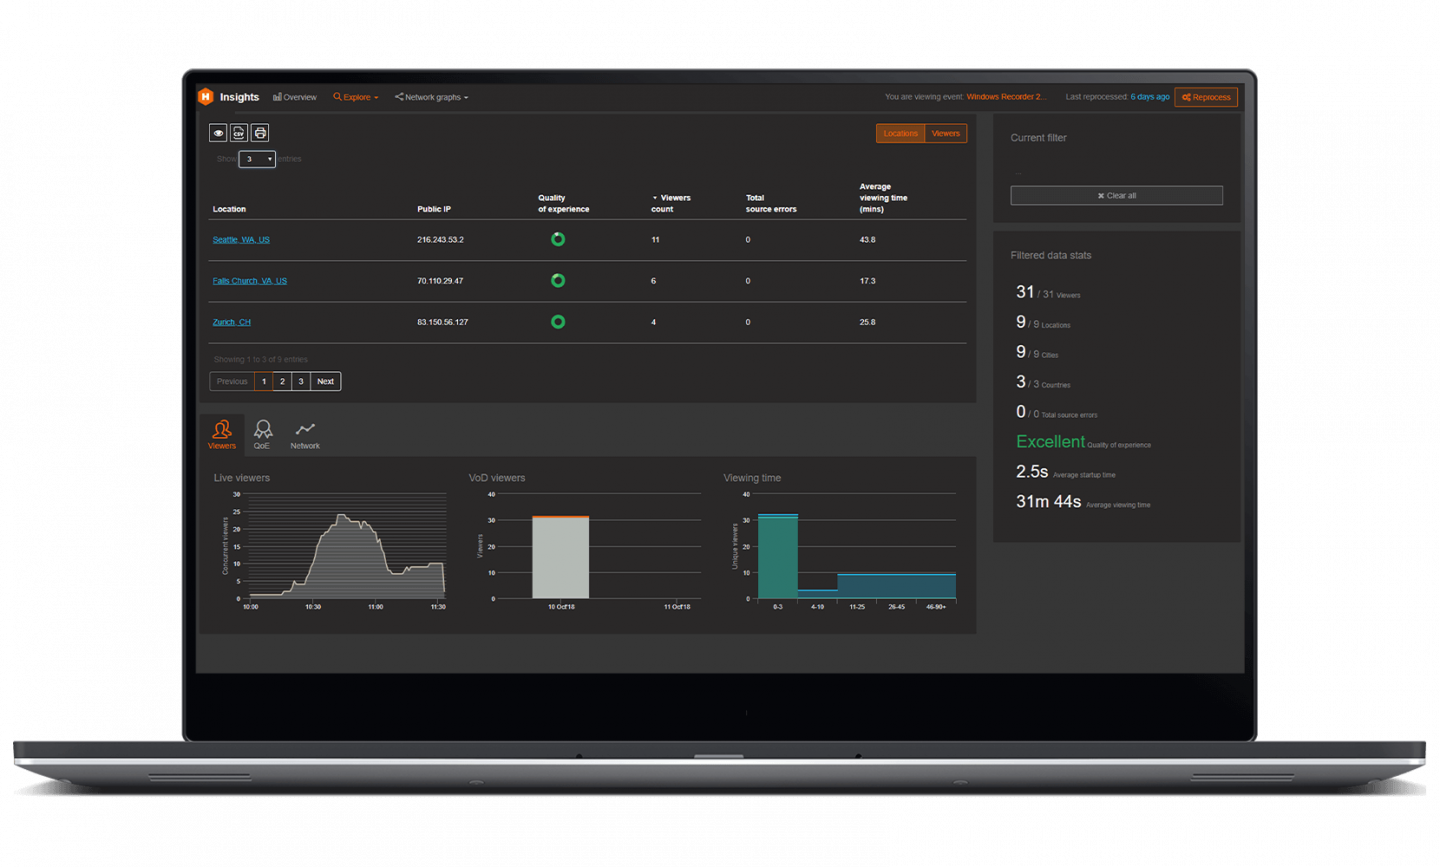 See high level reports, as well as detailed analysis on specific streaming metrics with Panopto and Hive Insights